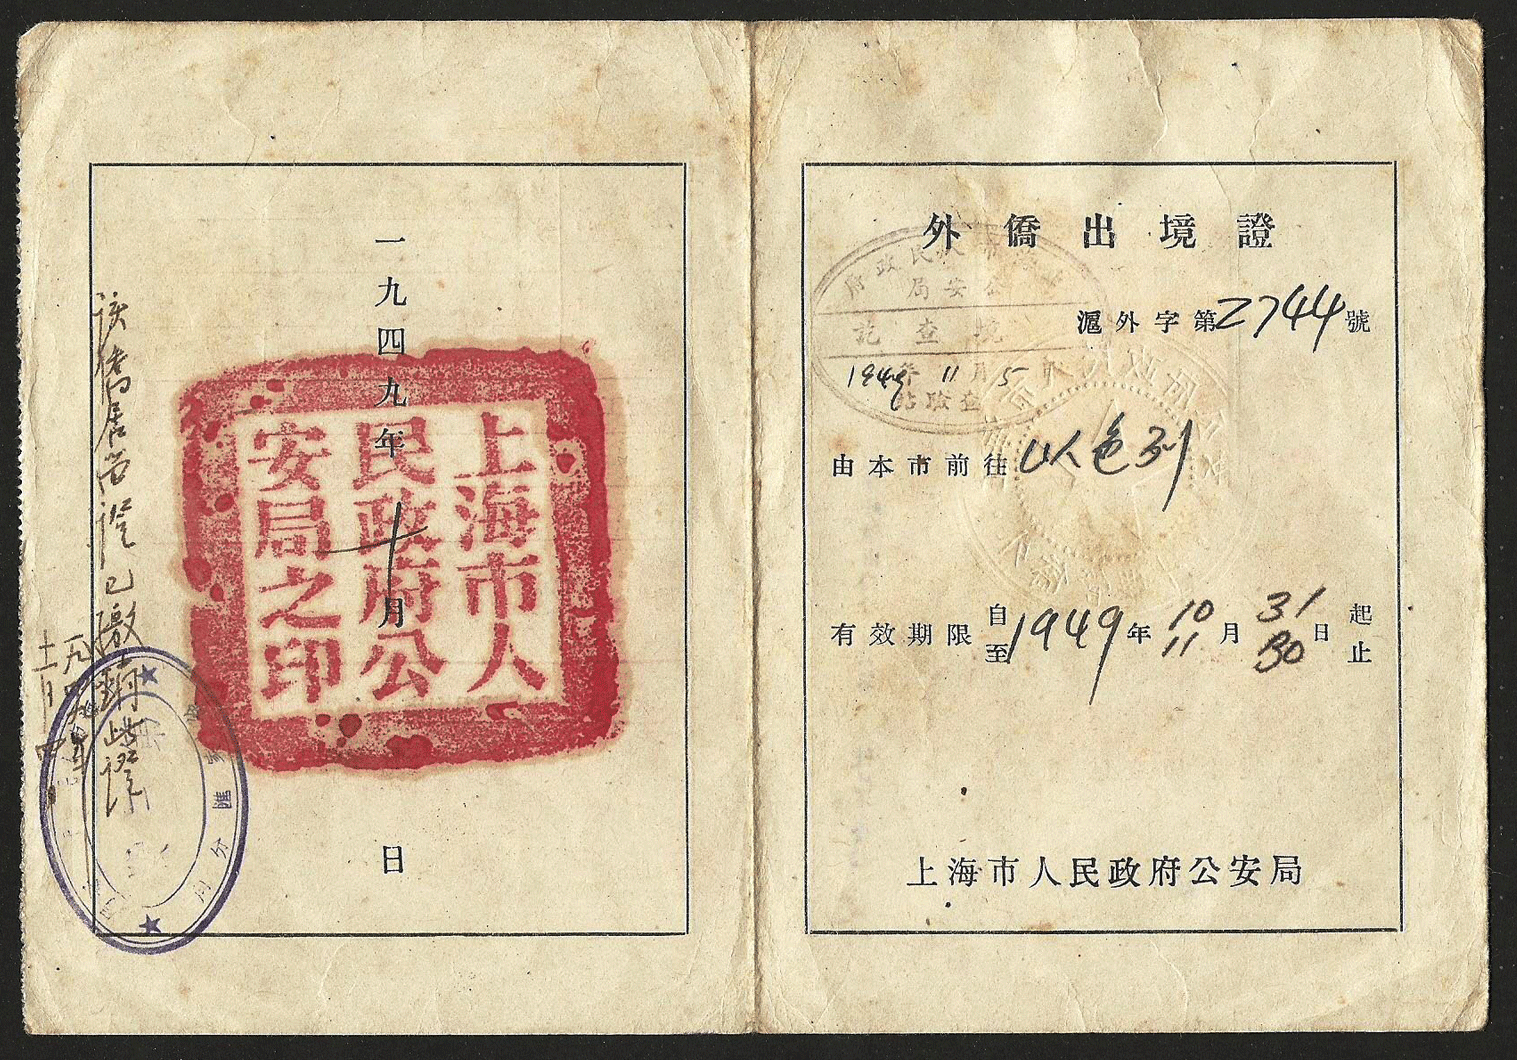 Aliens exit permit – China 1949